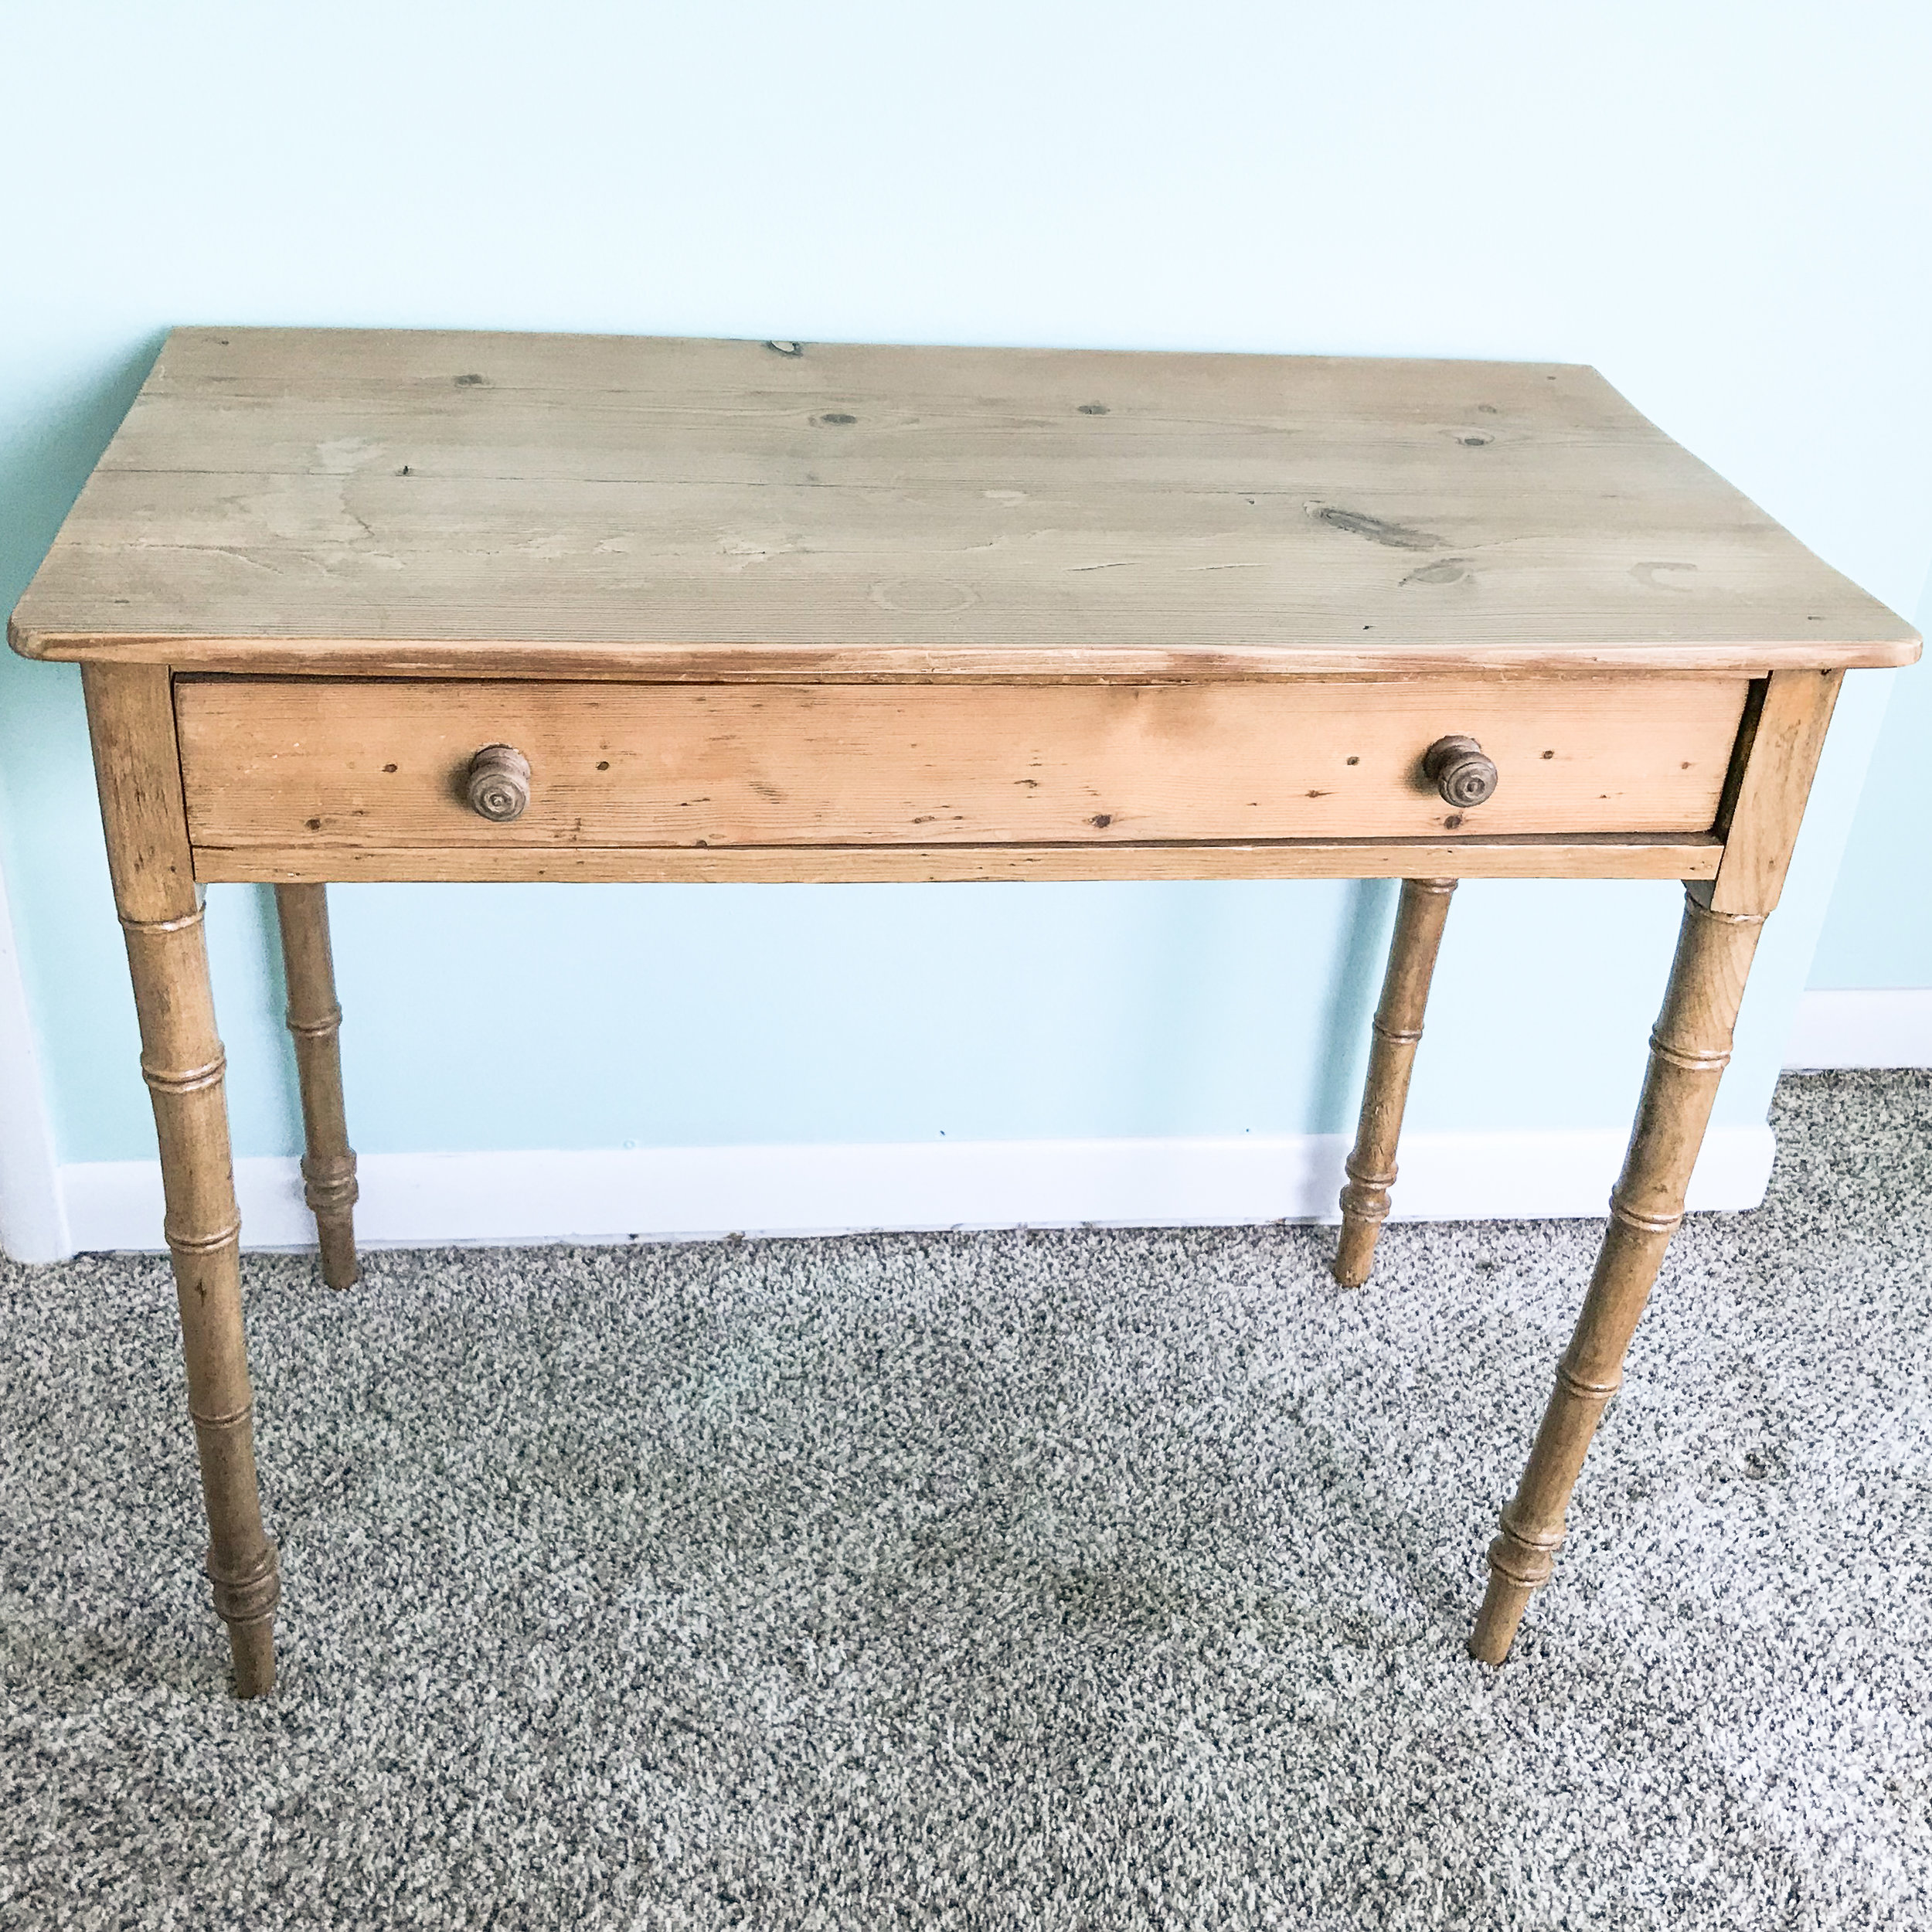 I found this table with faux bamboo legs on the Facebook Marketplace.